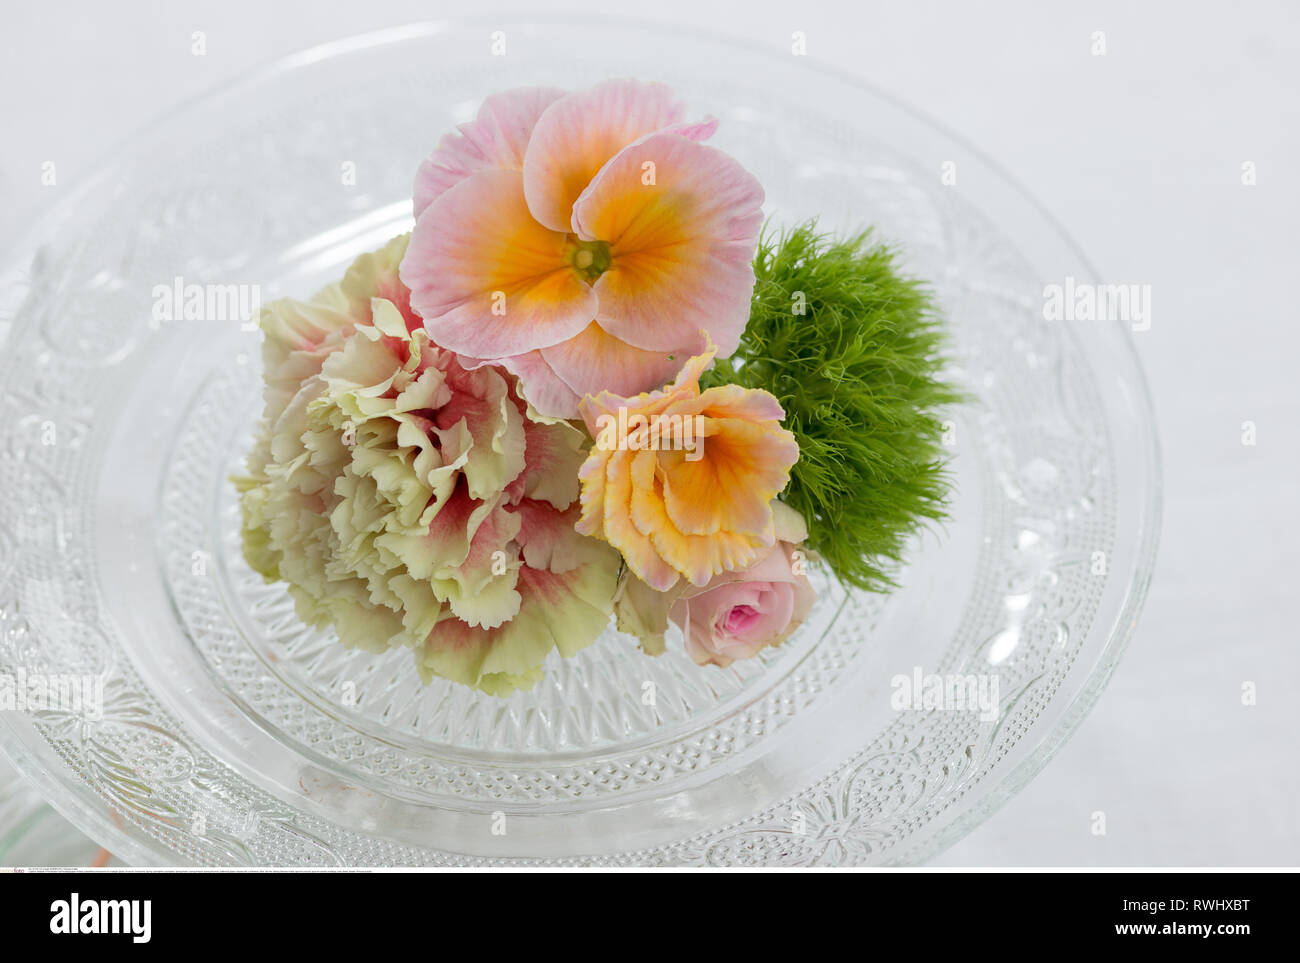 botany, polyanthrus blossoms on nostalgic gl, Caution! For Greetingcard-Use / Postcard-Use In German Speaking Countries Certain Restrictions May Apply - Stock Image